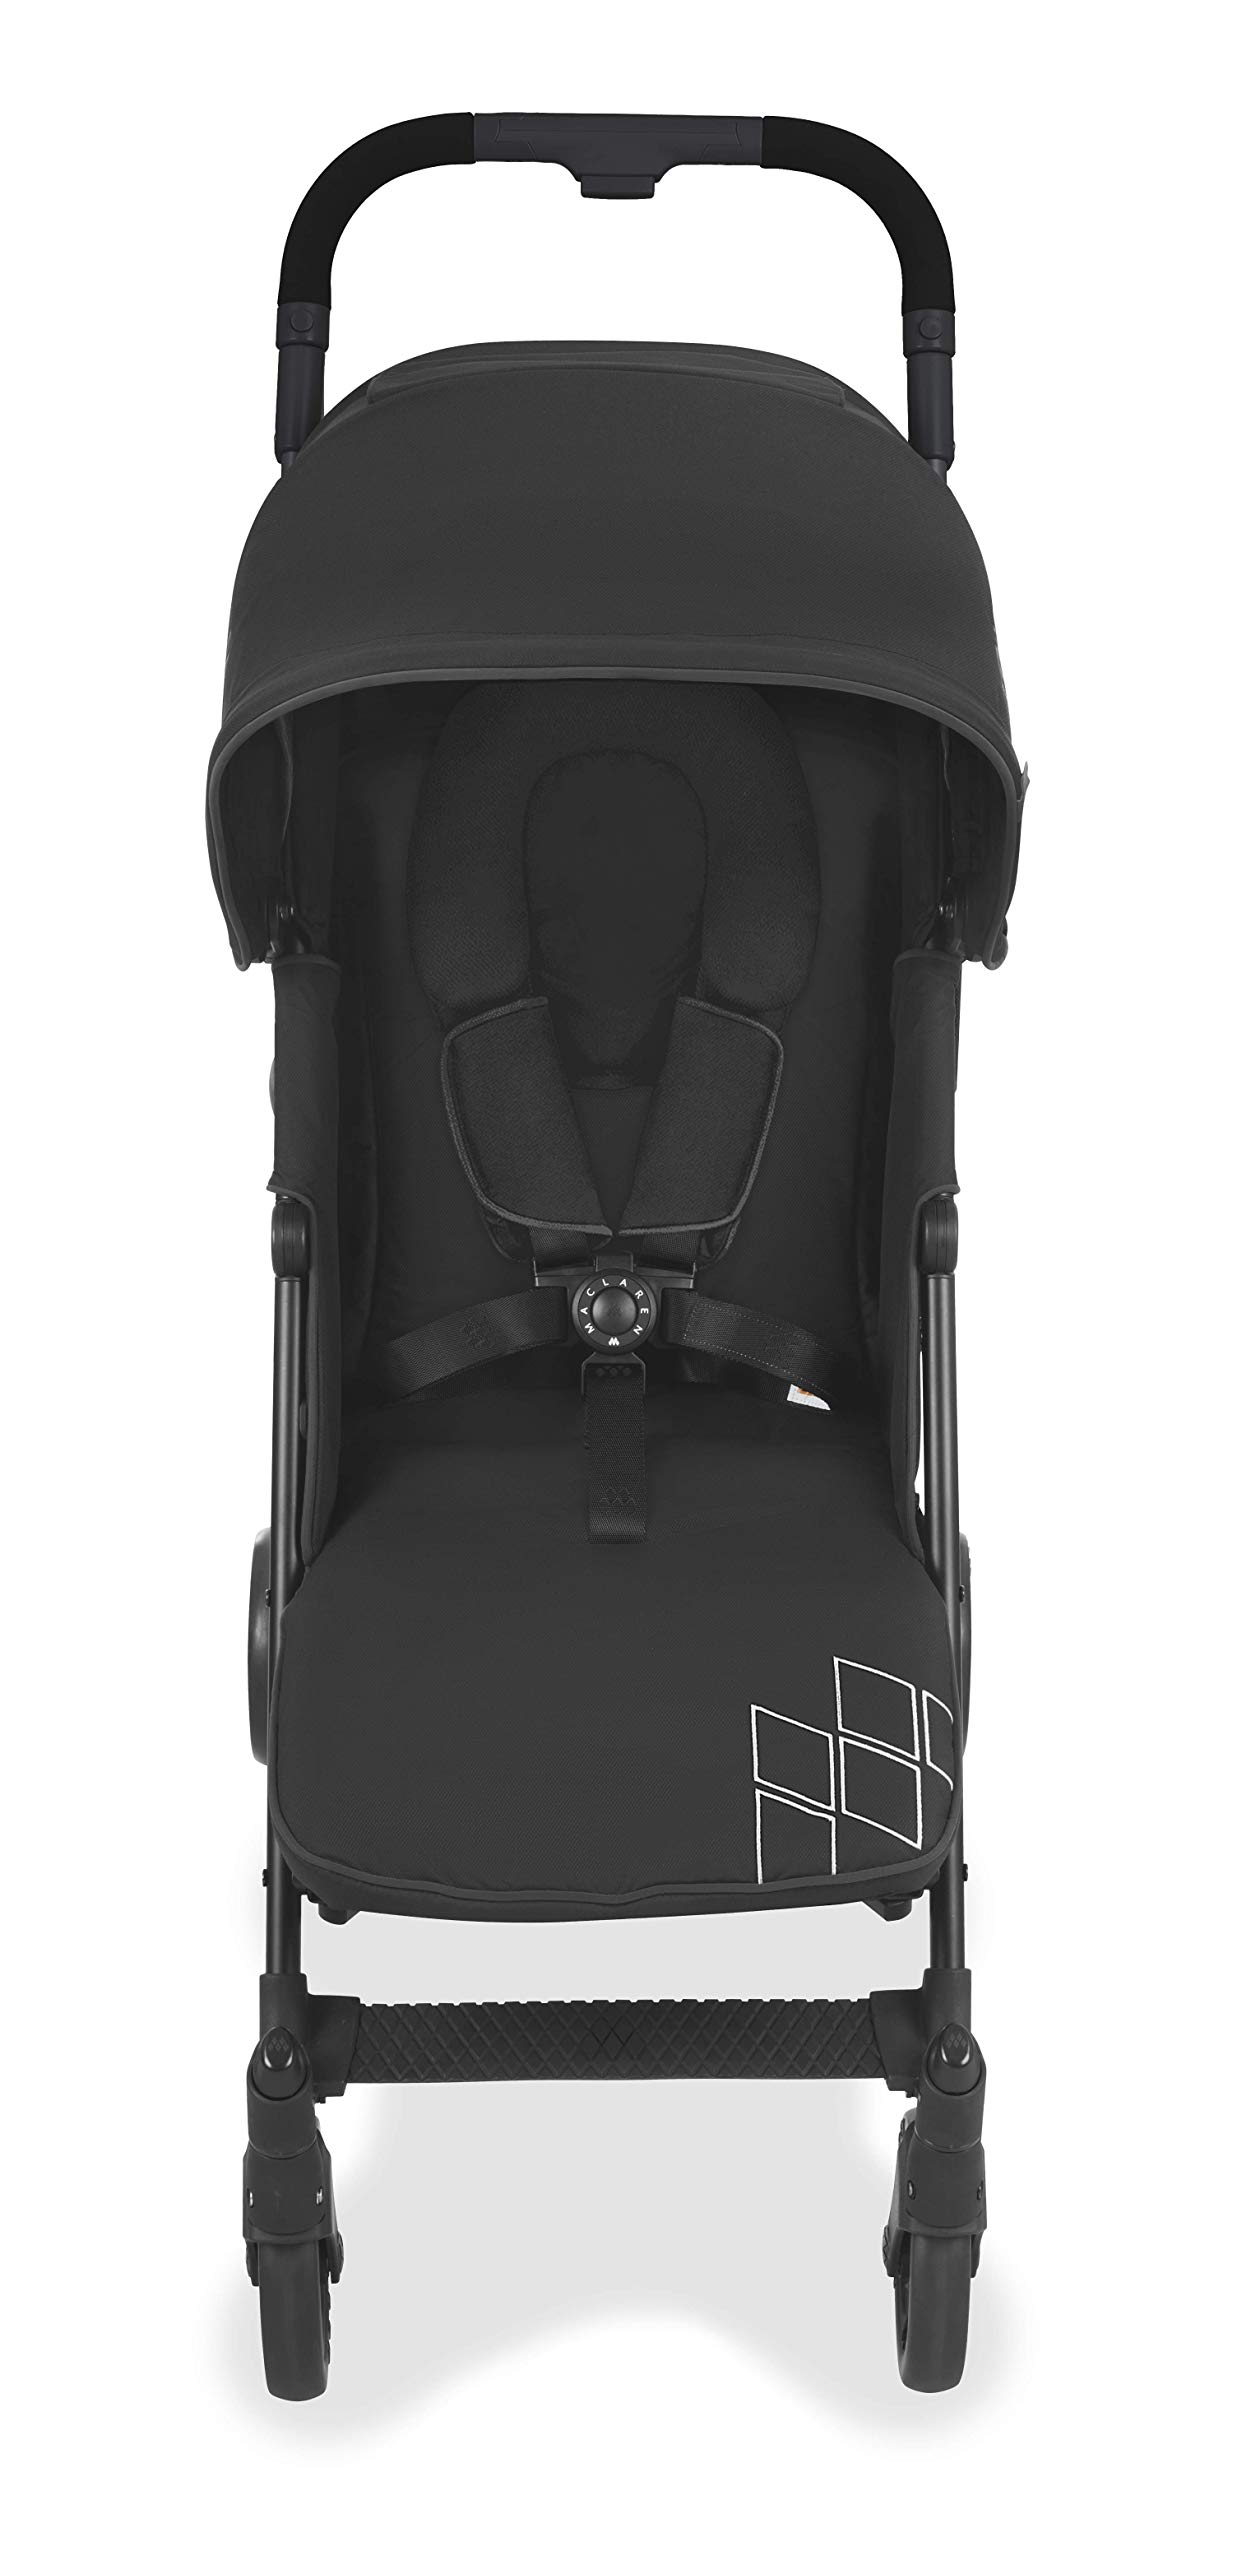 Maclaren Techno arc Stroller - lightweight, compact,Black/Black Maclaren The techno arc's basic weight is 7.1kg; ideal for newborns and children up to 25kg. The folded dimensions are 113cm L x 35cm w x 35cm H. The stroller is assembled The techno arc's padded seat reclines into 4 positions and converts into a new-born safety system. Coupled with ultra light flat-free eva tires and all wheel suspension The techno arc includes a wind-resistant rain cover and headhugger & shoulder pads. Waterproof/ upf 50+ hood to protect from the elements and machine washable seats to keep tidy 4